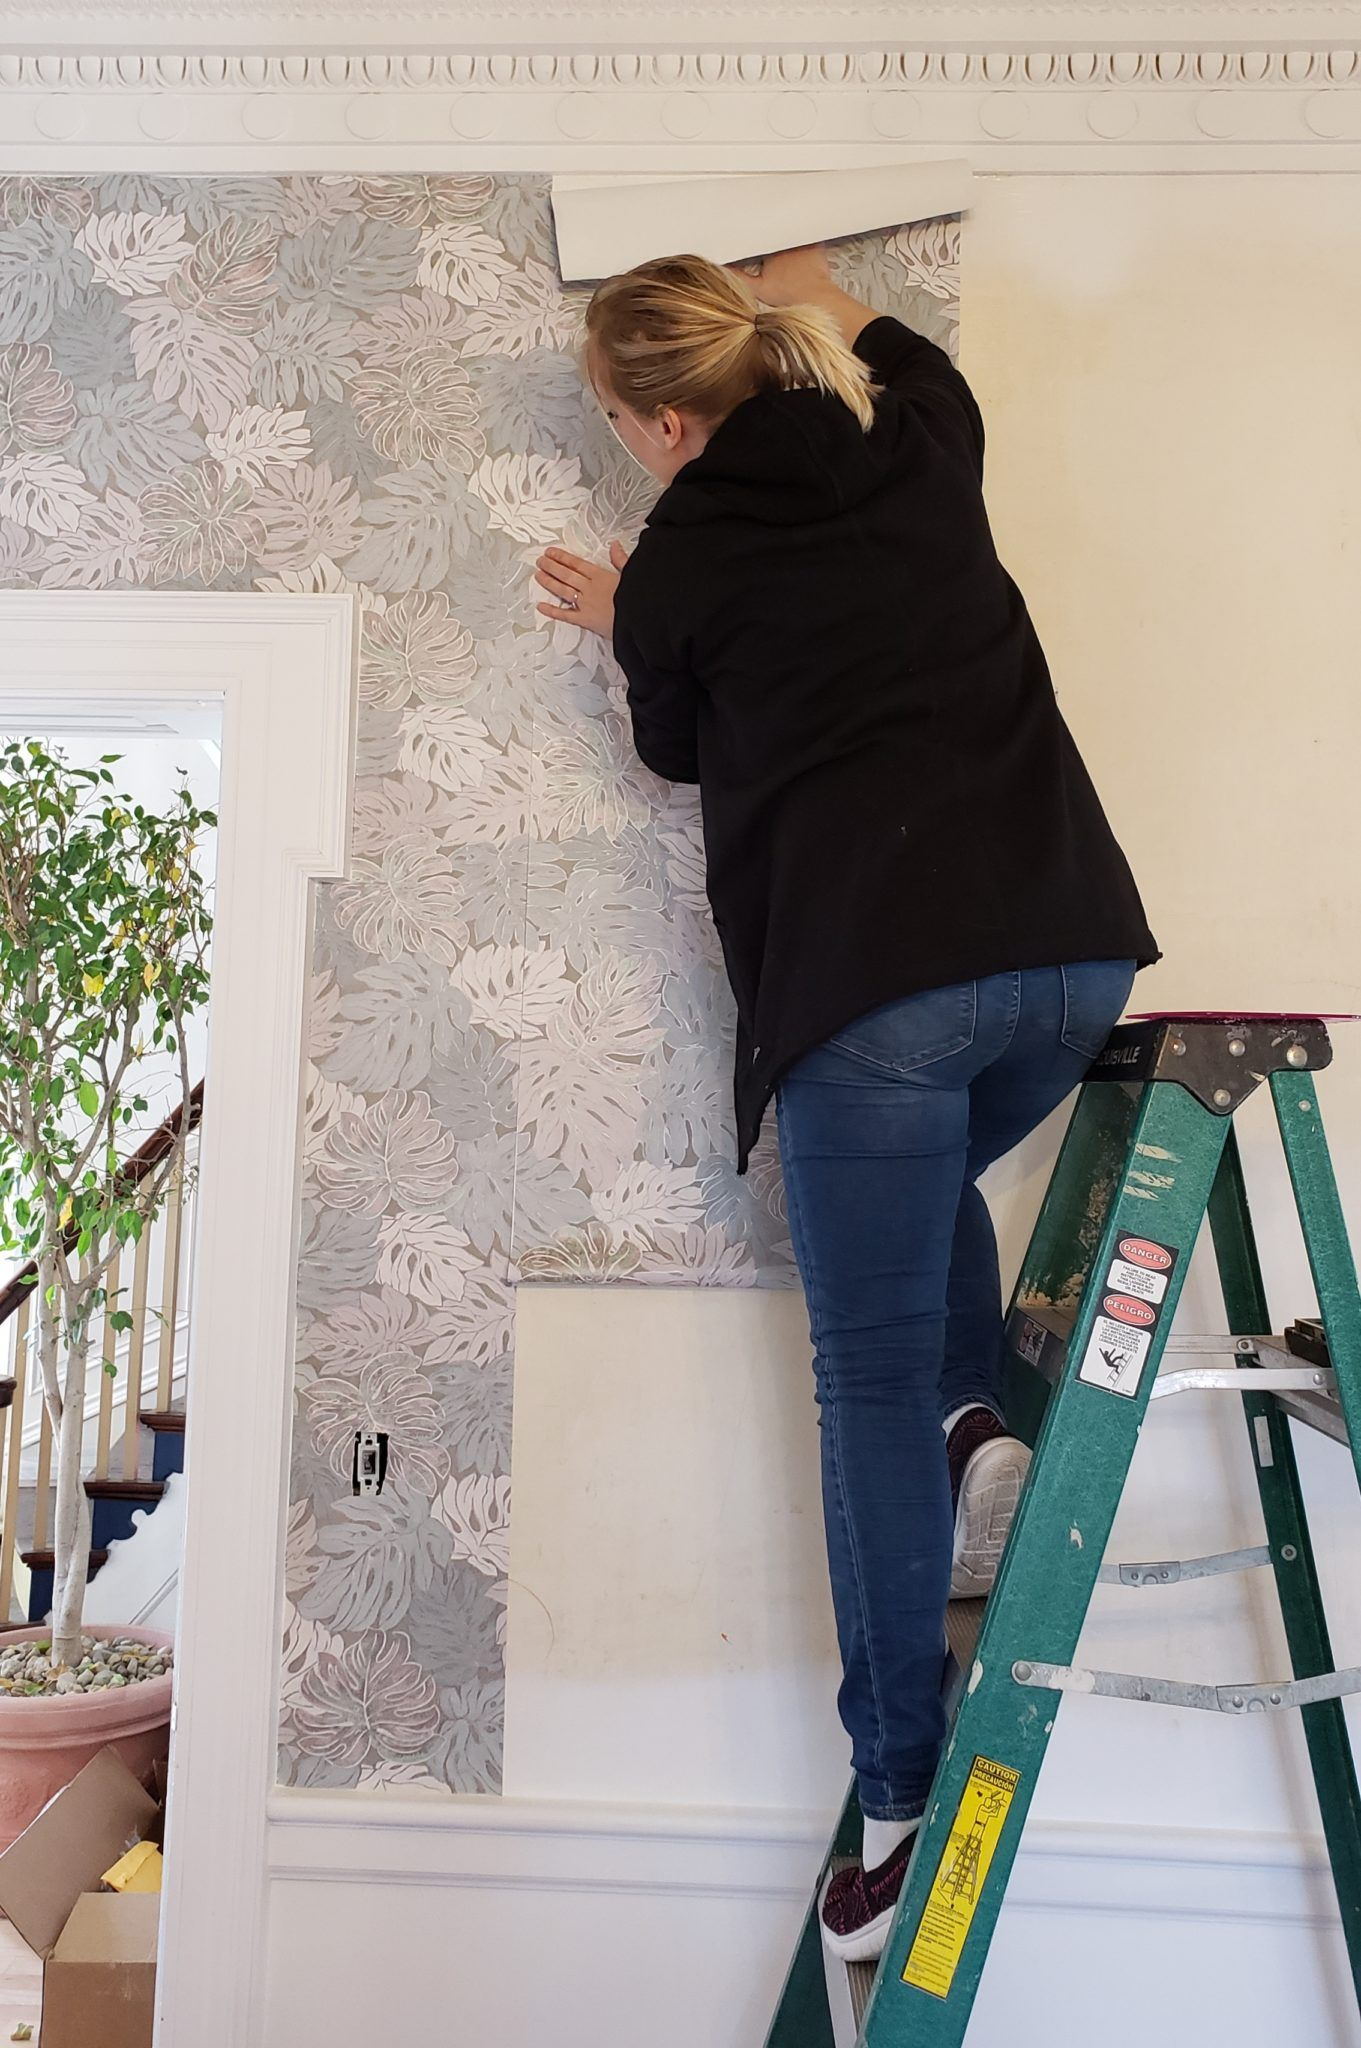 Putting Up Wallpaper With Wallpaper Paste Reality Daydream Wallpapering Tips How To Install Wallpaper Wallpaper